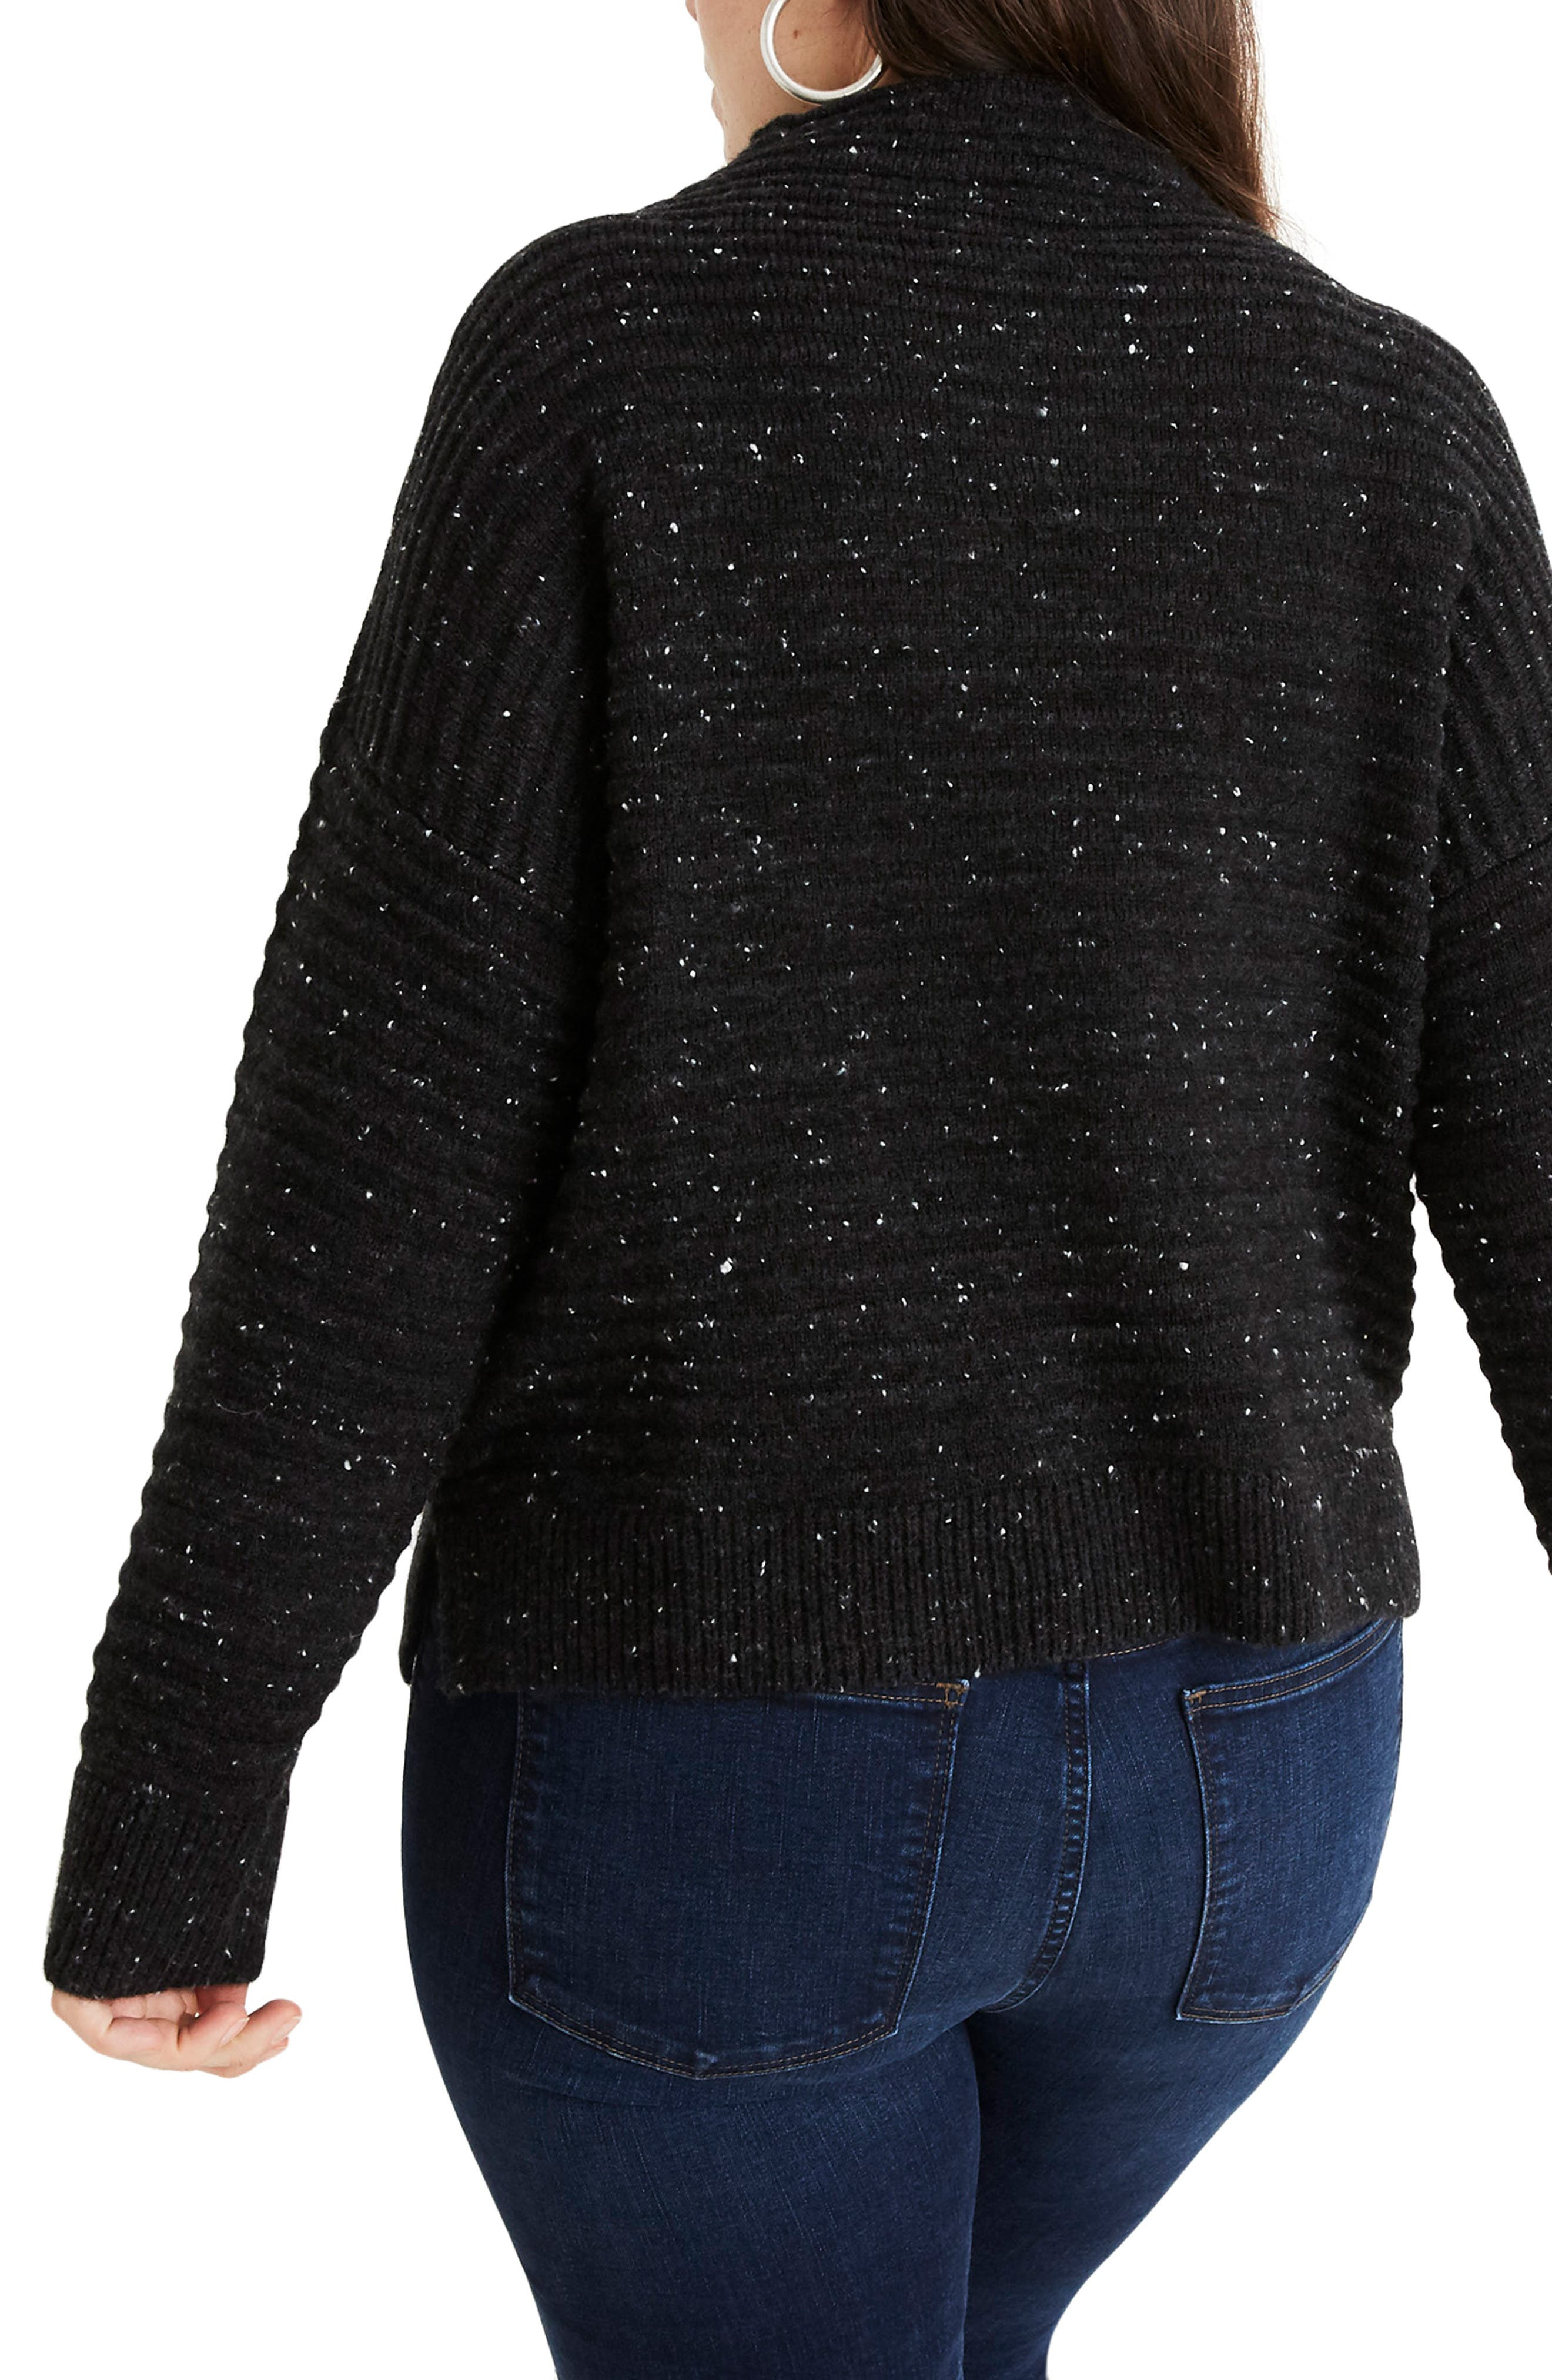 MADEWELL, Belmont Donegal Mock Neck Sweater, Alternate thumbnail 7, color, 020